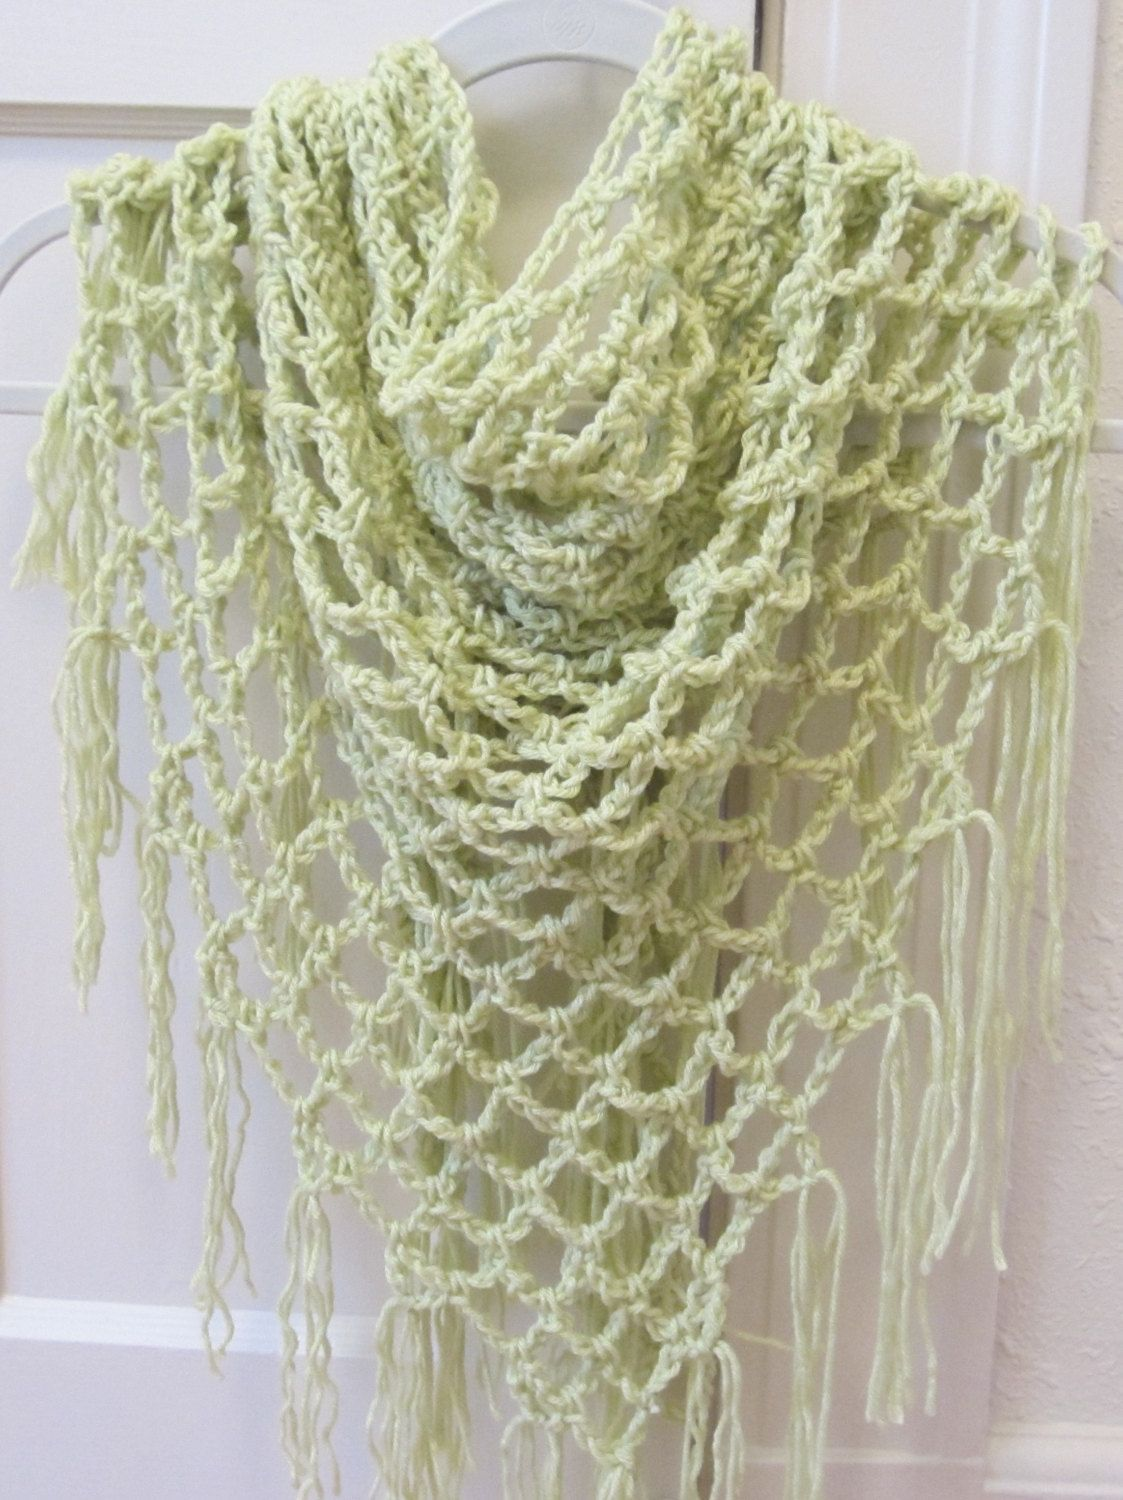 Crochet pattern open lace arch stitch spring summer shawl pattern crochet pattern open lace arch stitch spring summer shawl pattern only 400 via bankloansurffo Image collections